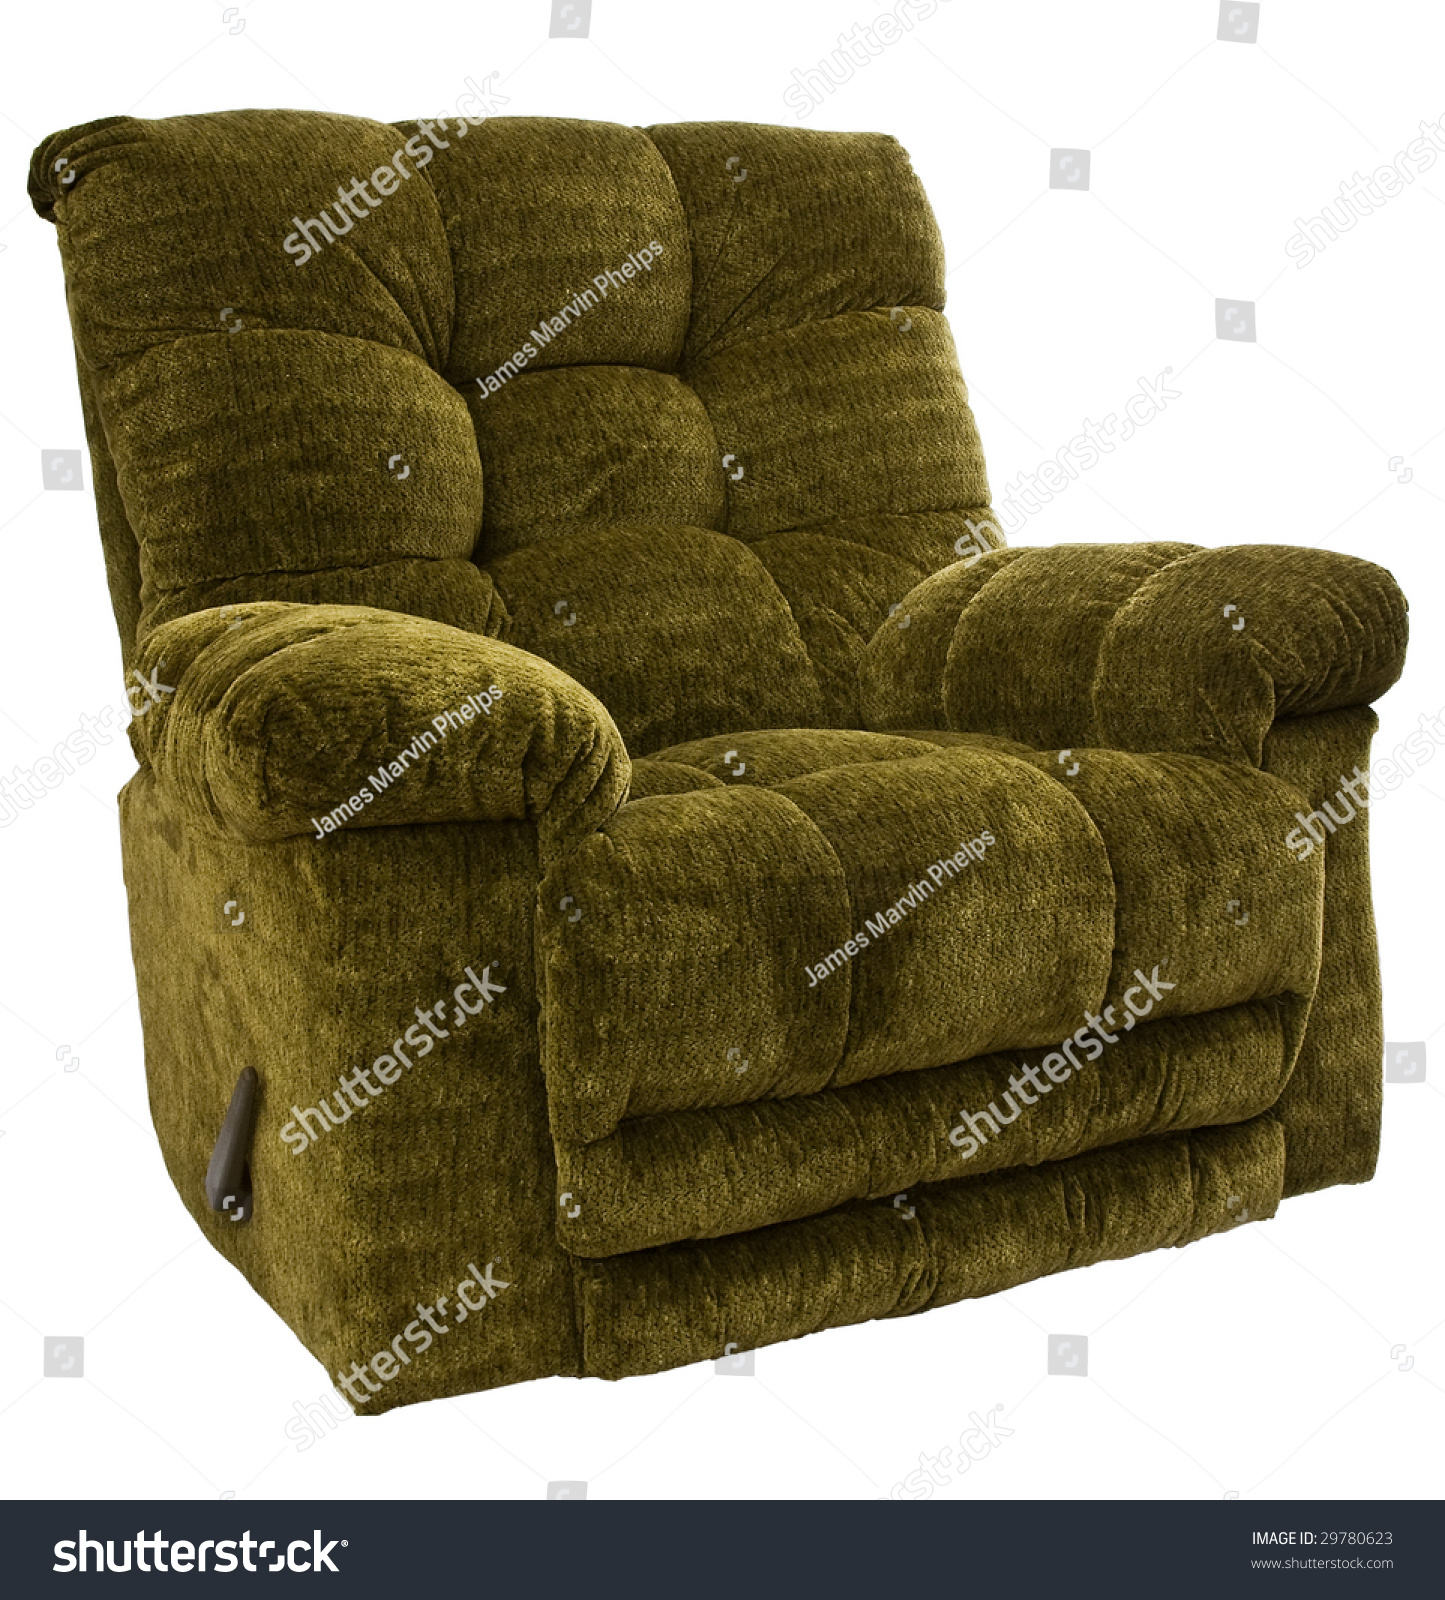 big and tall recliner chair shabby chic dining slipcovers sage green rocker stock photo